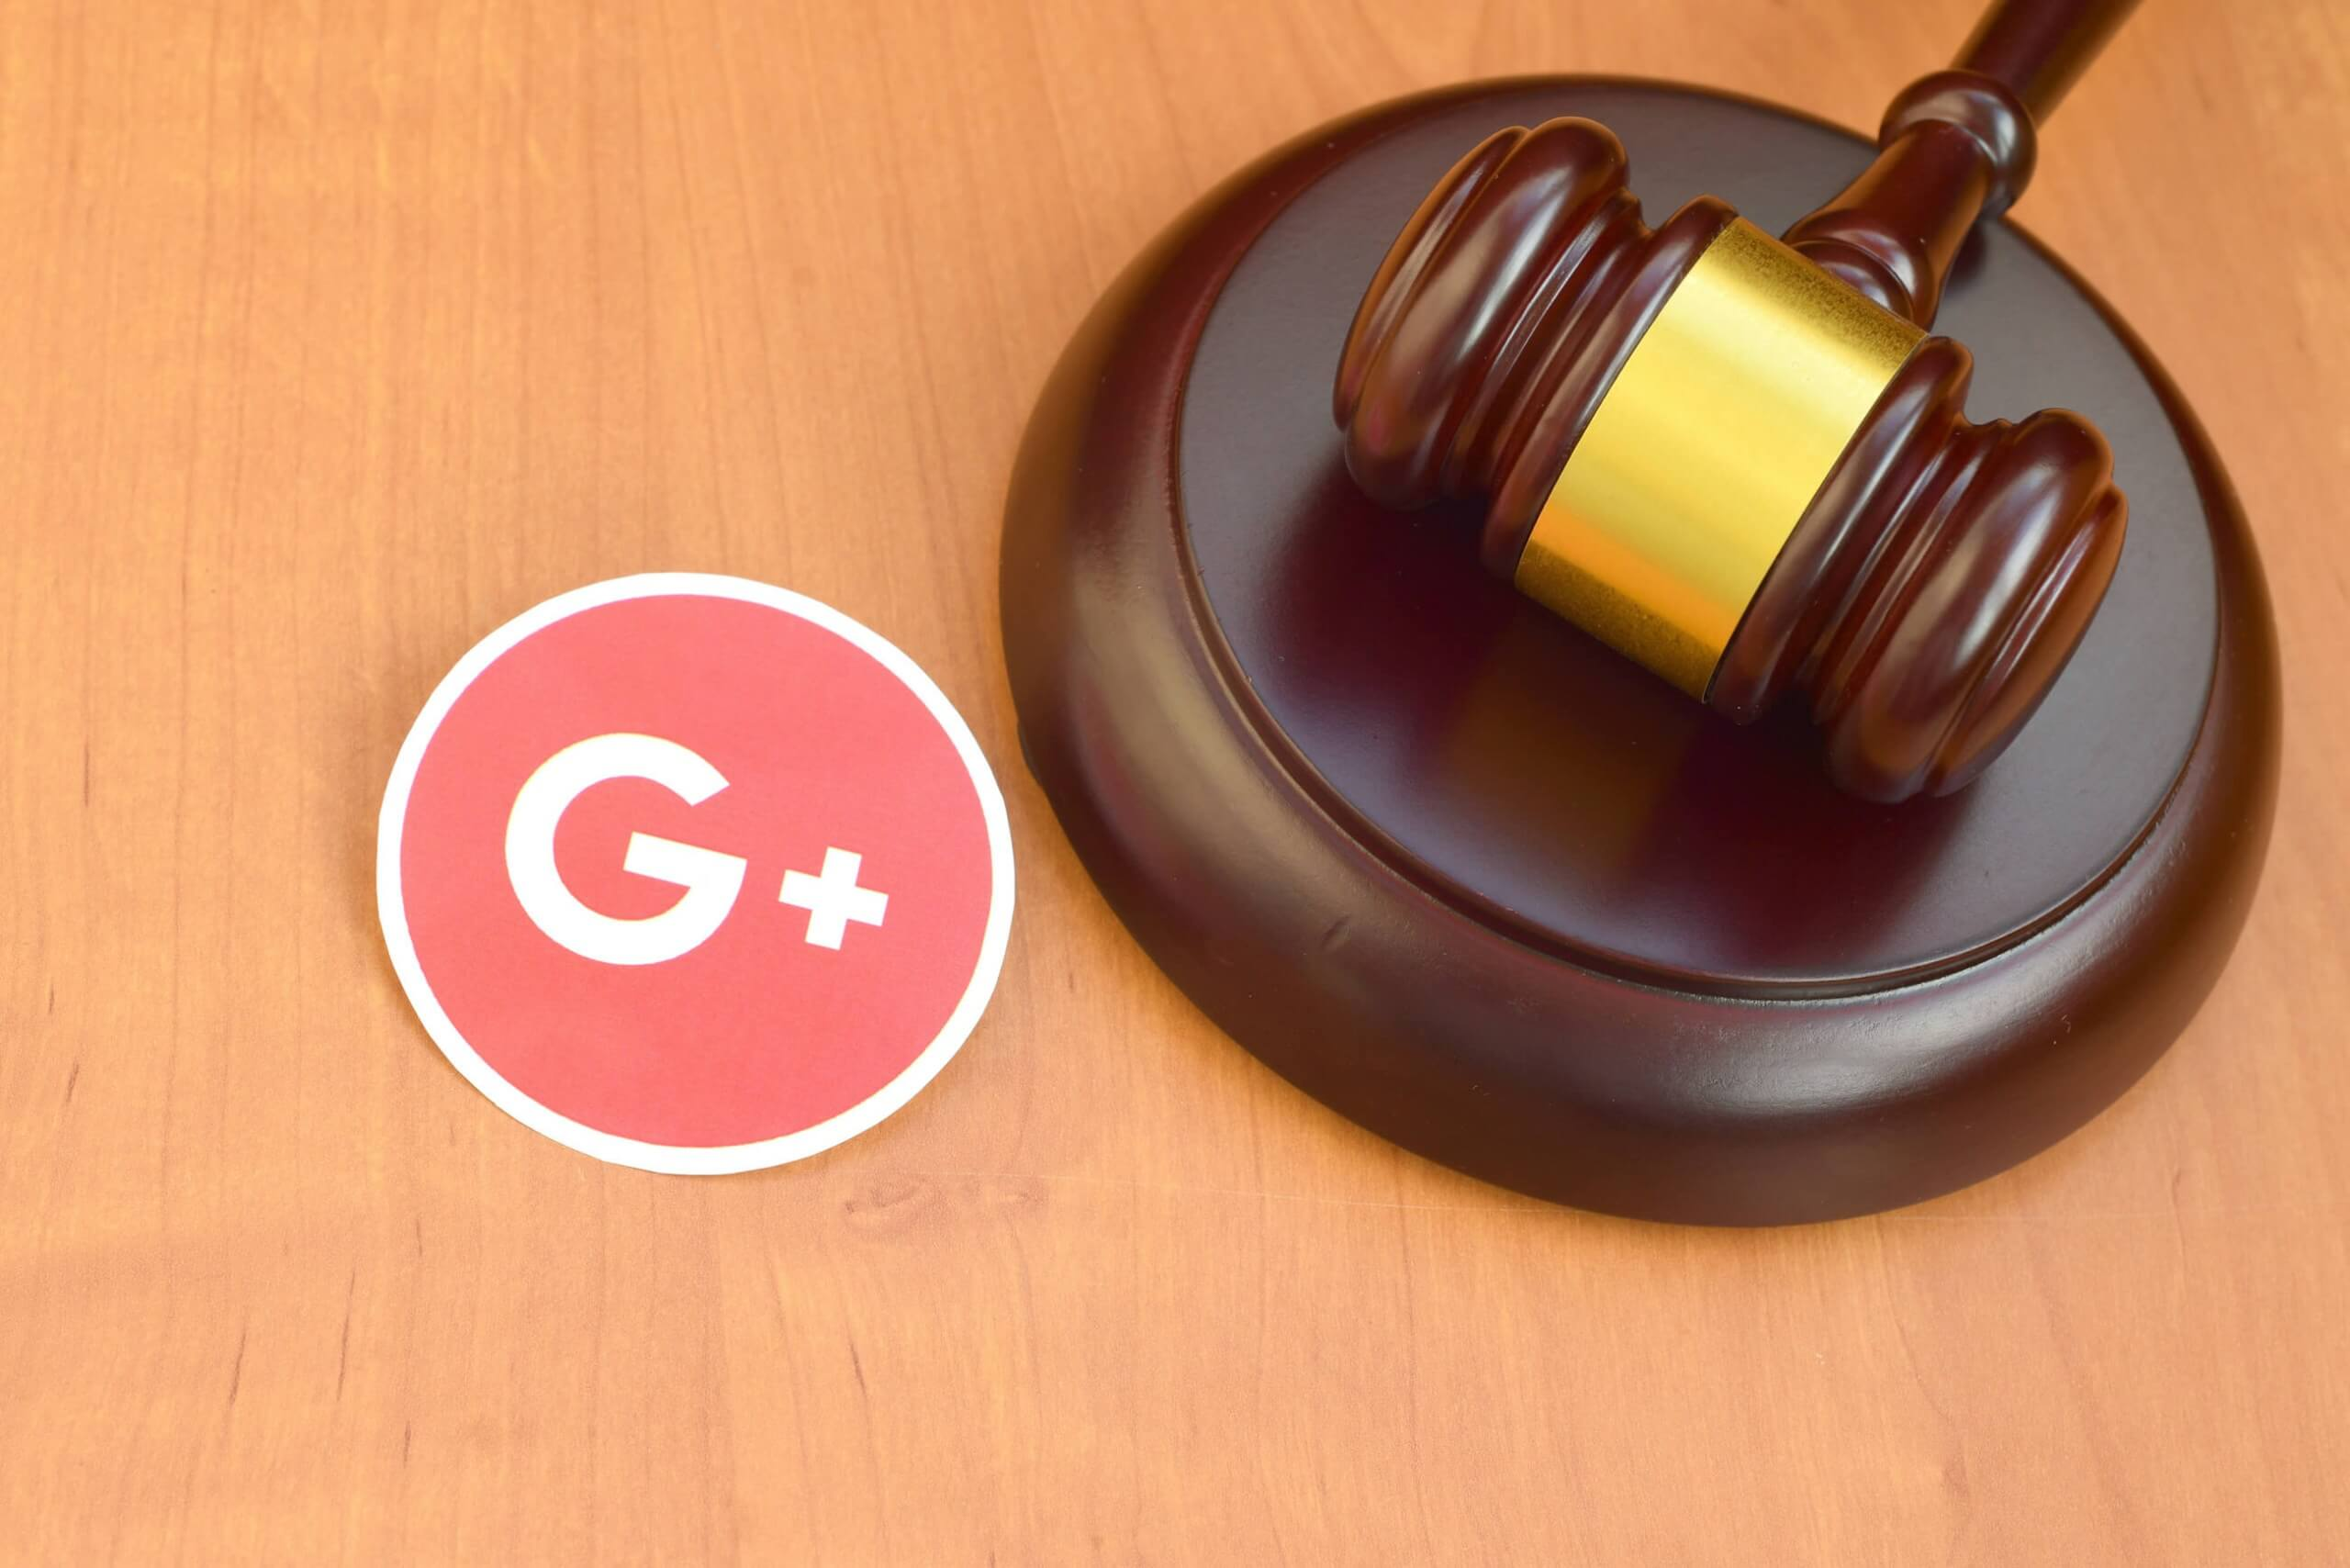 Google+ users stand to get up to $12 each in $7.5 million data breach settlement